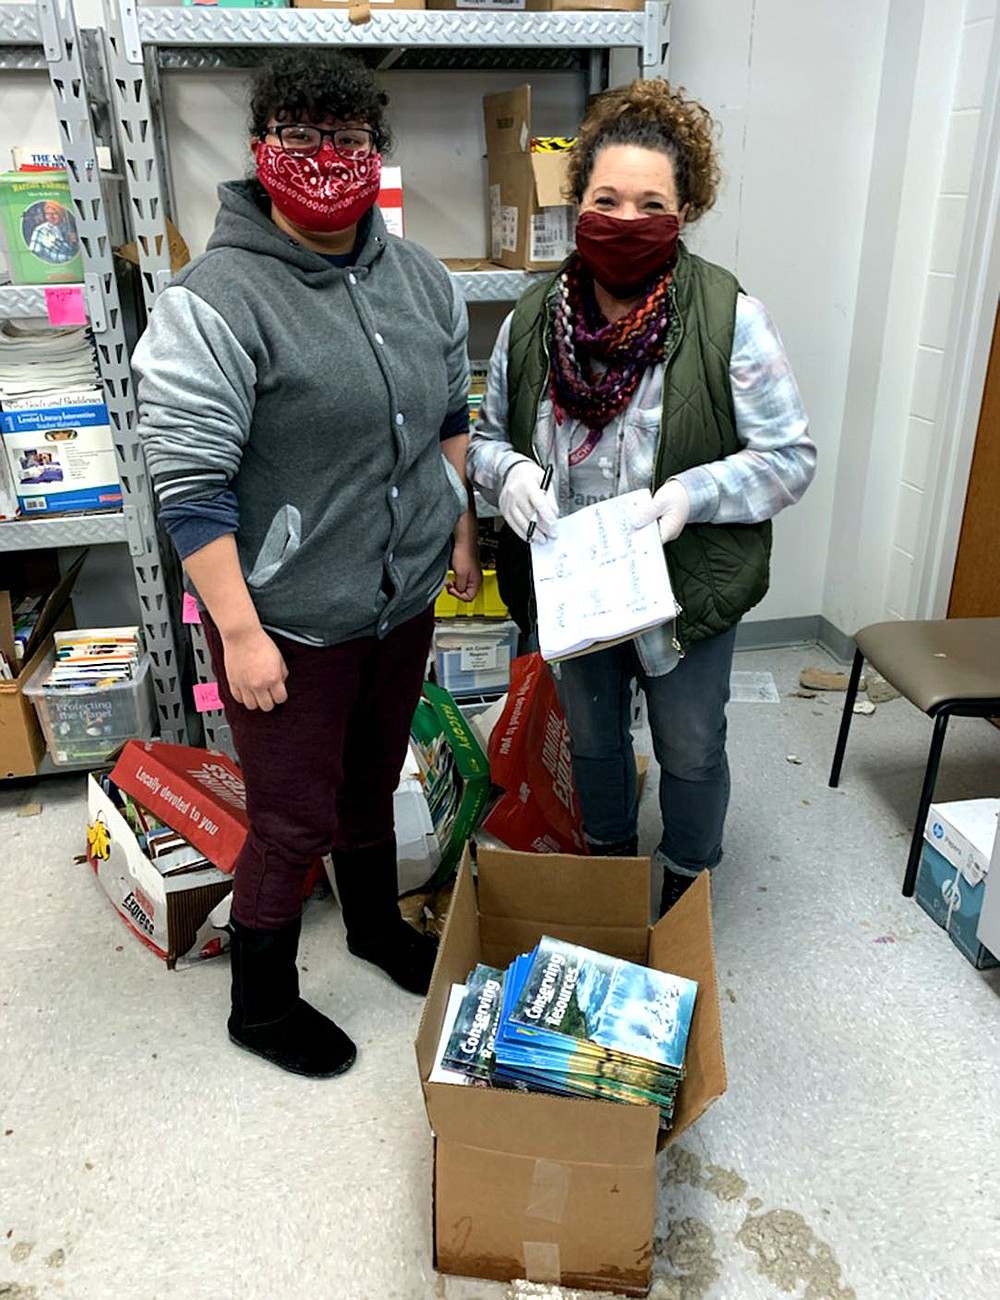 Photo submitted Volunteers Jazmin Rubio (left) and Michele Markovich help sort through damaged school supplies on Wednesday after Bright Futures donation room flooded.